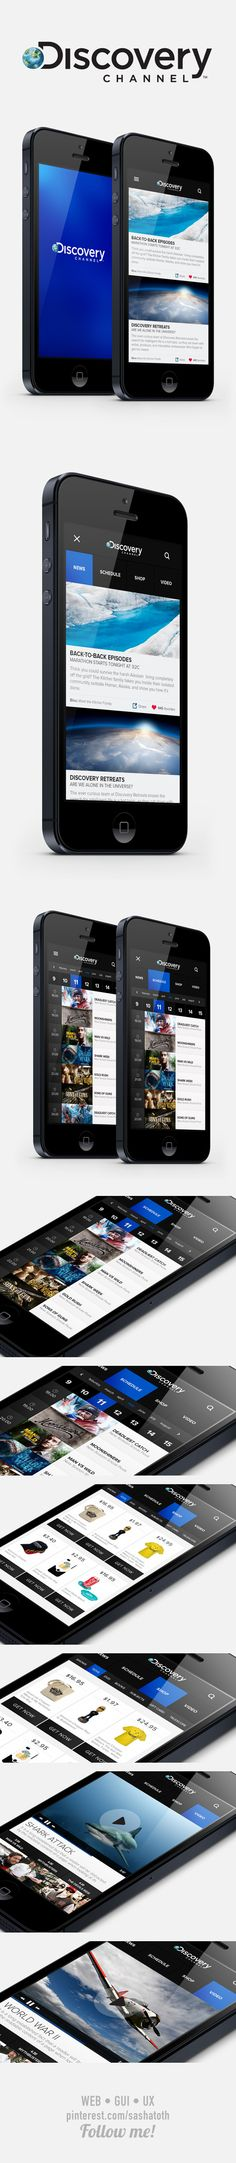 Discovery Channel re-design Concept by Enes Danıs on Behance